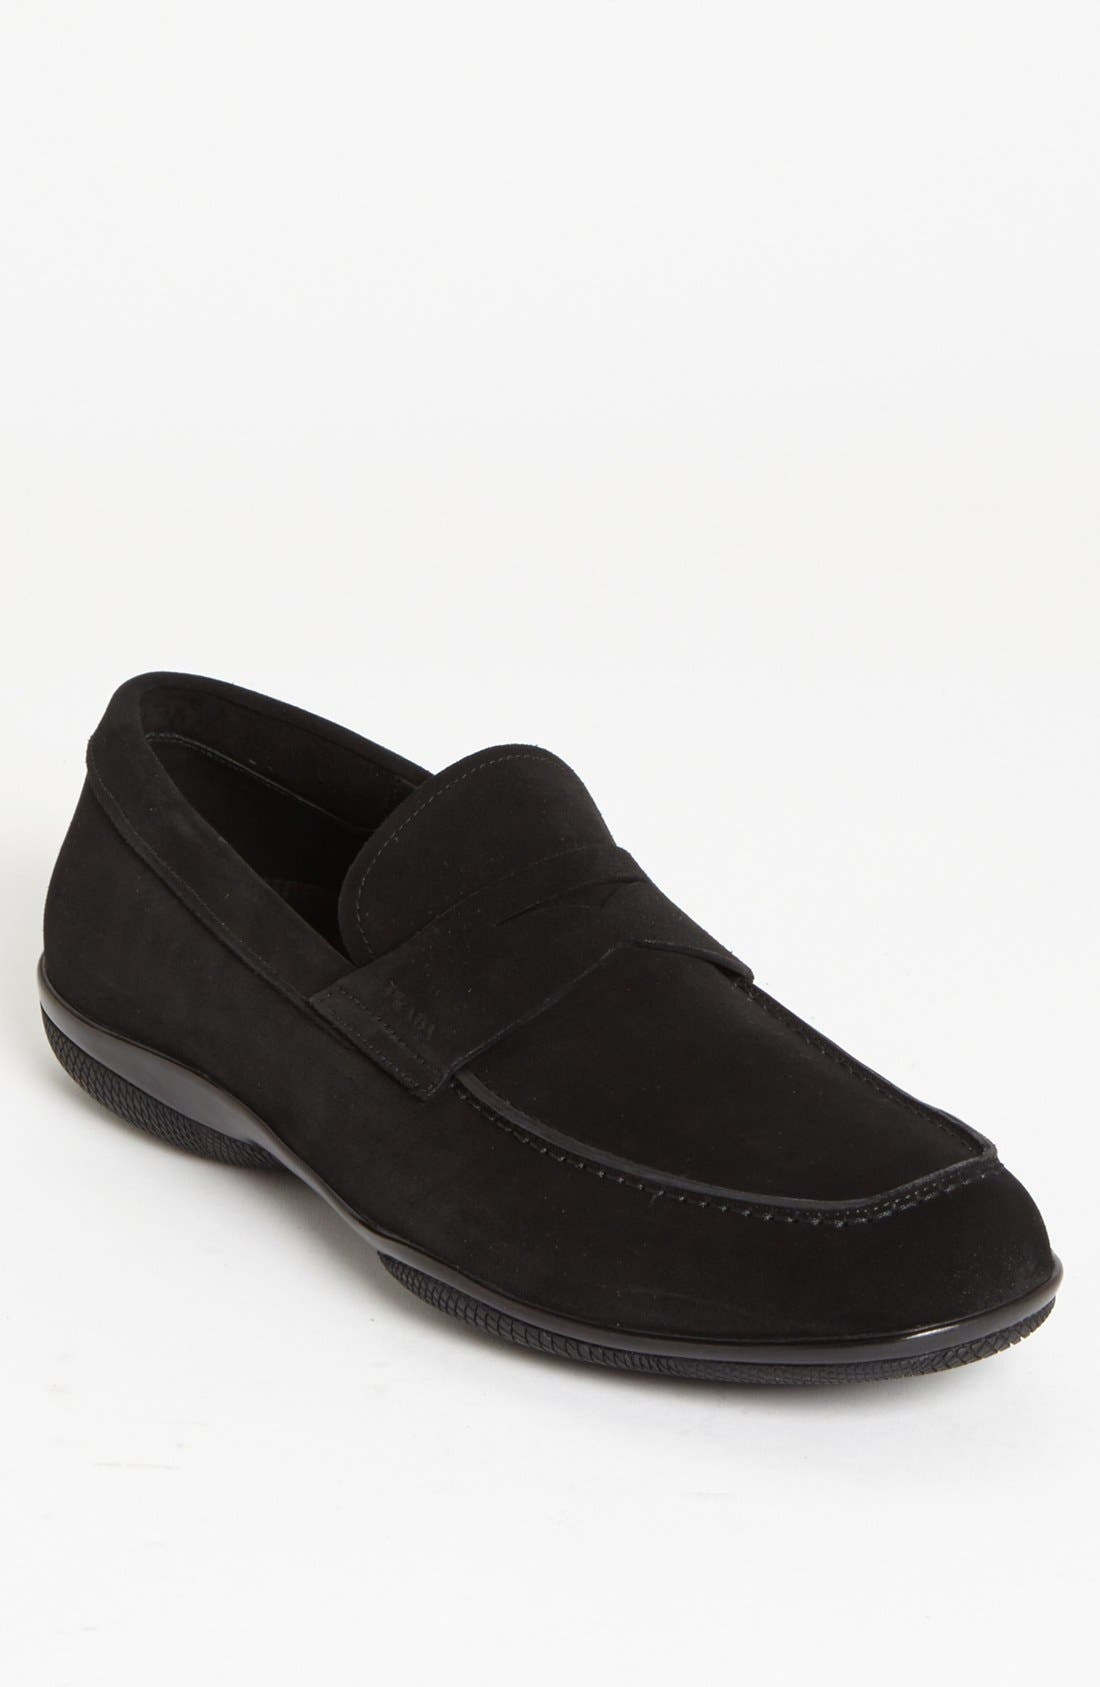 Main Image - Prada 'Toblac' Suede Penny Loafer